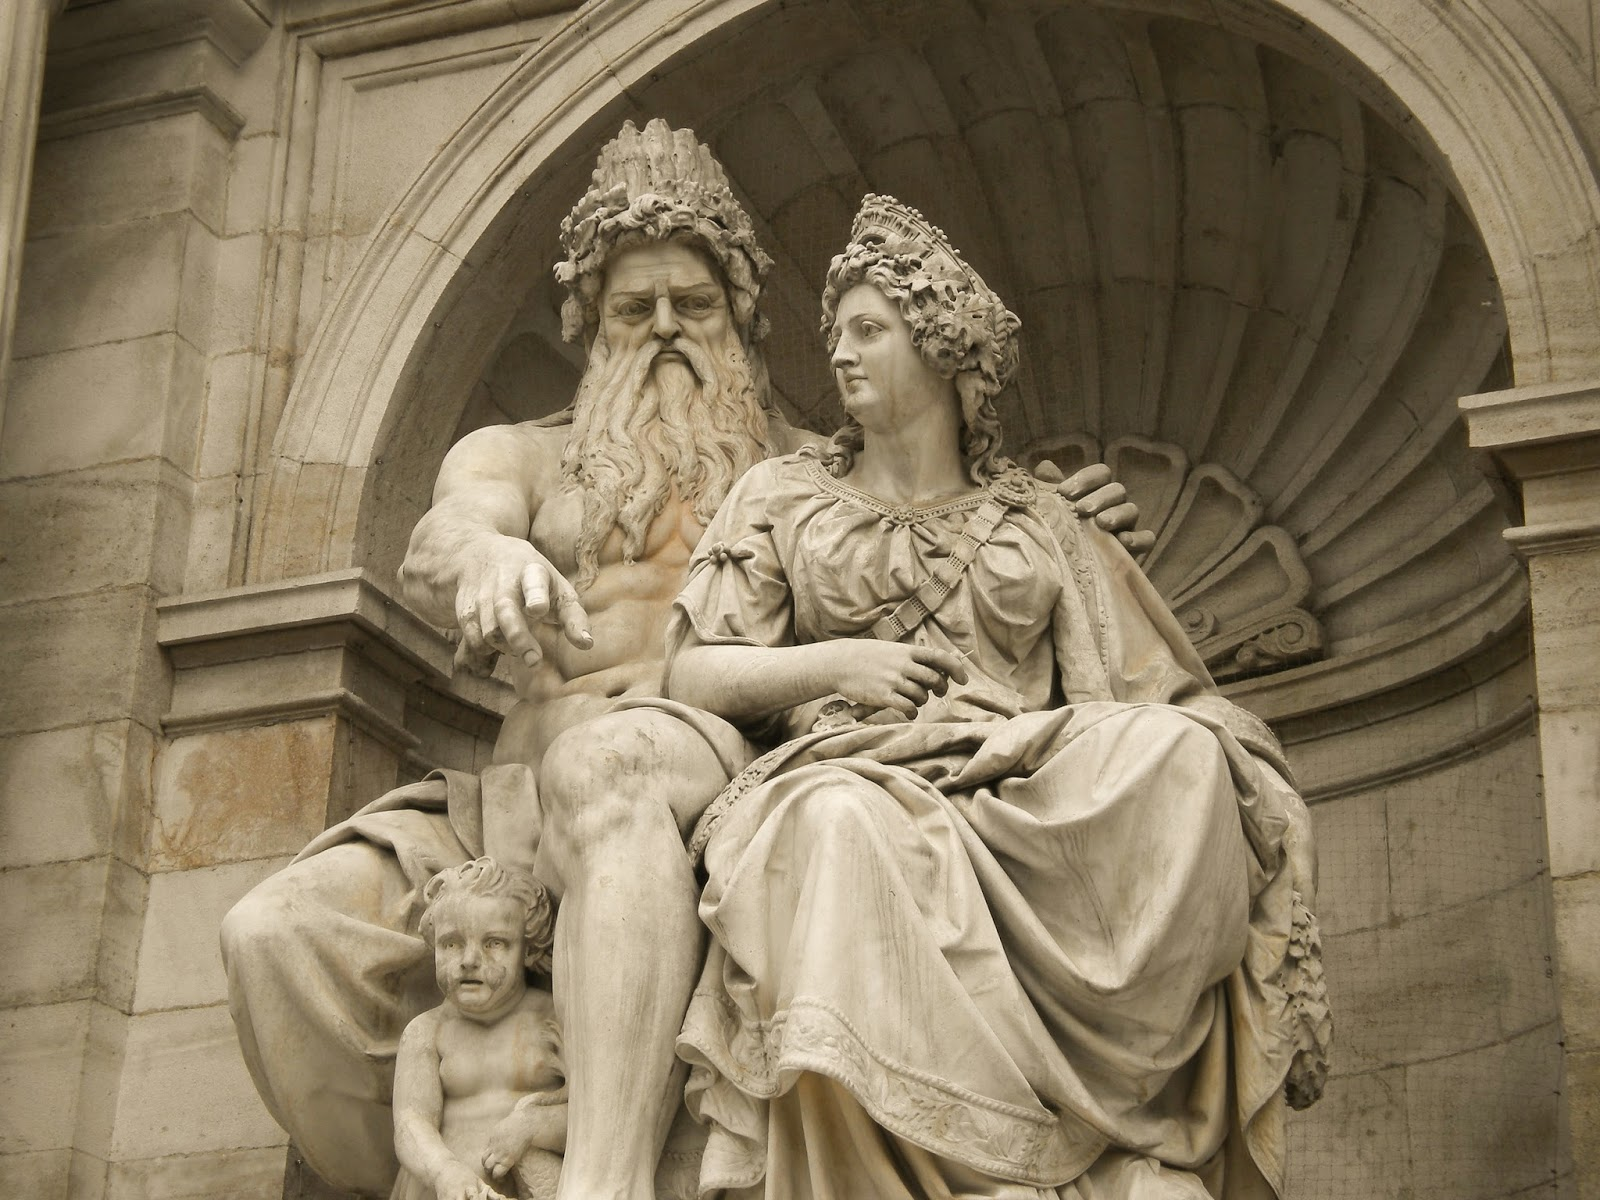 Statue-of-Zeus-and-Hera-in-Albertina-Square